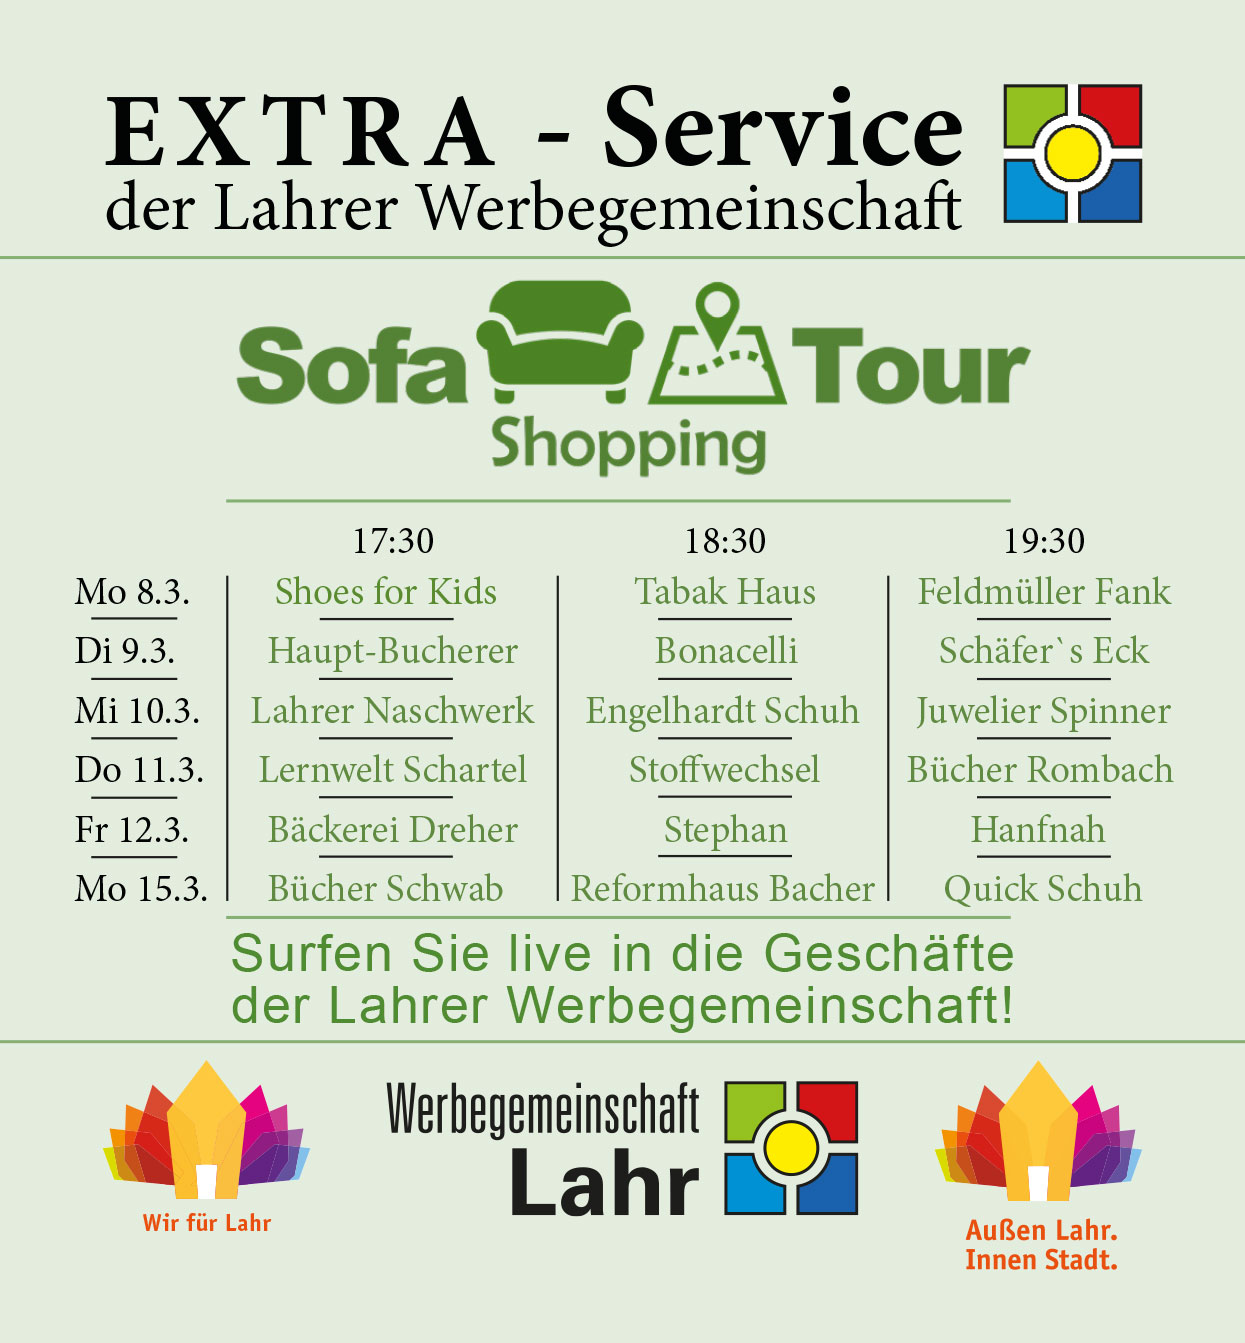 sofa shopping tour